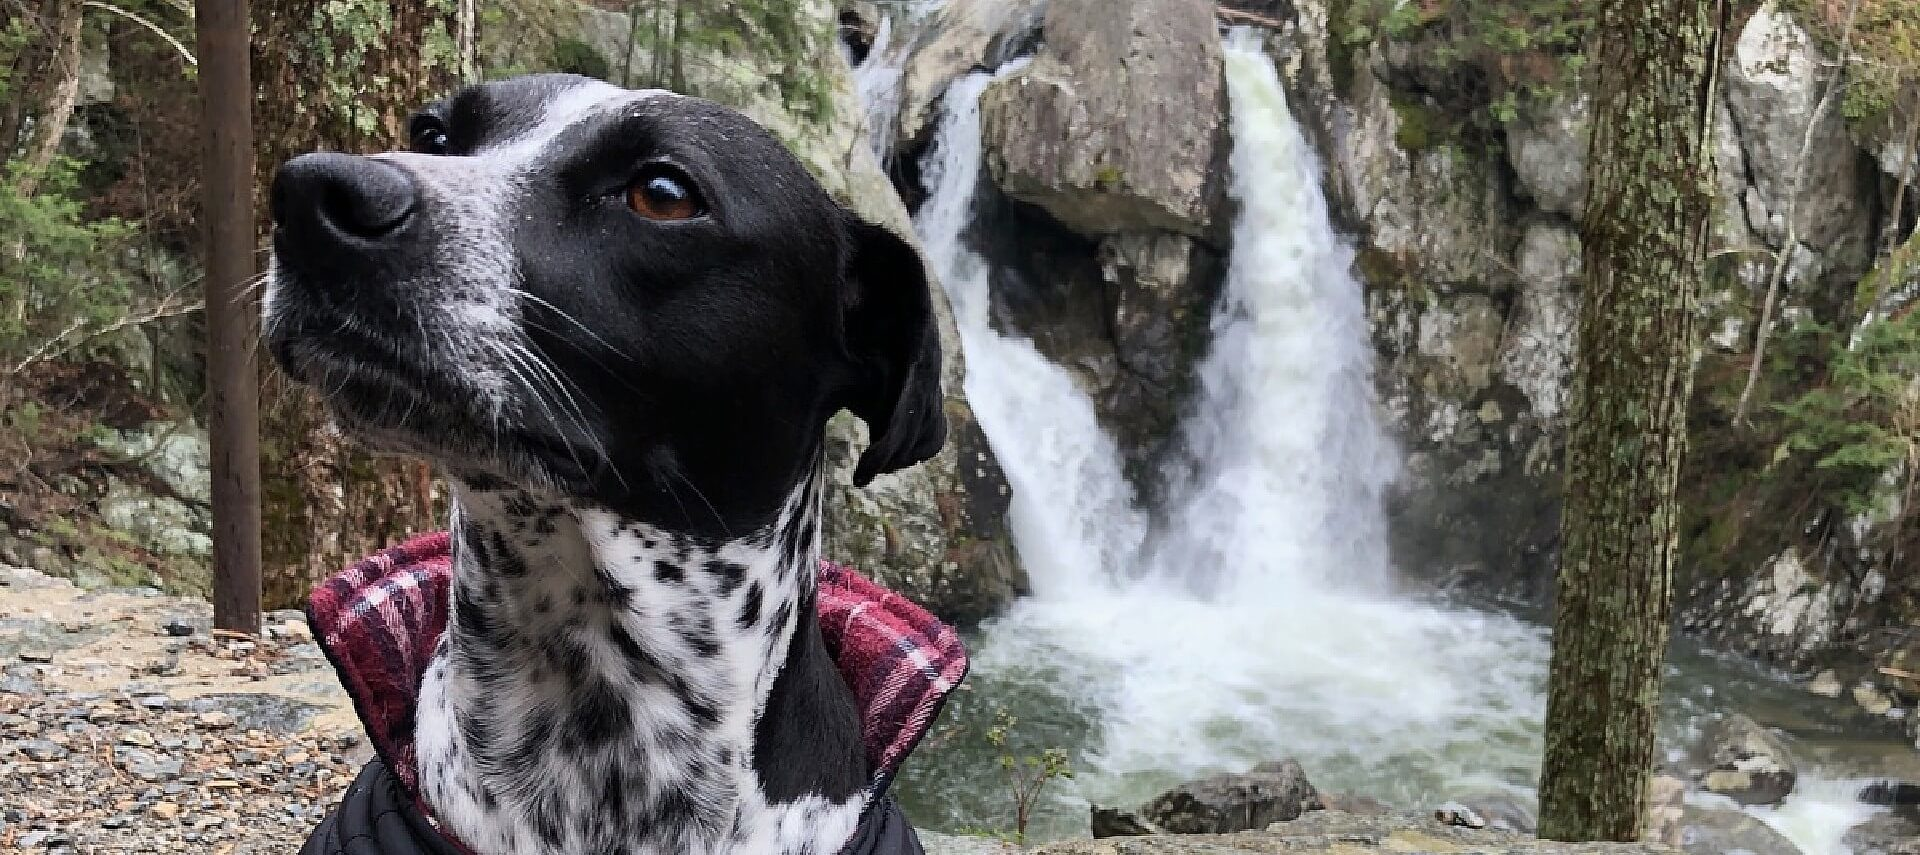 Black and white dog with red plaid jacket sitting among trees in front of waterfall cascading into pool of water